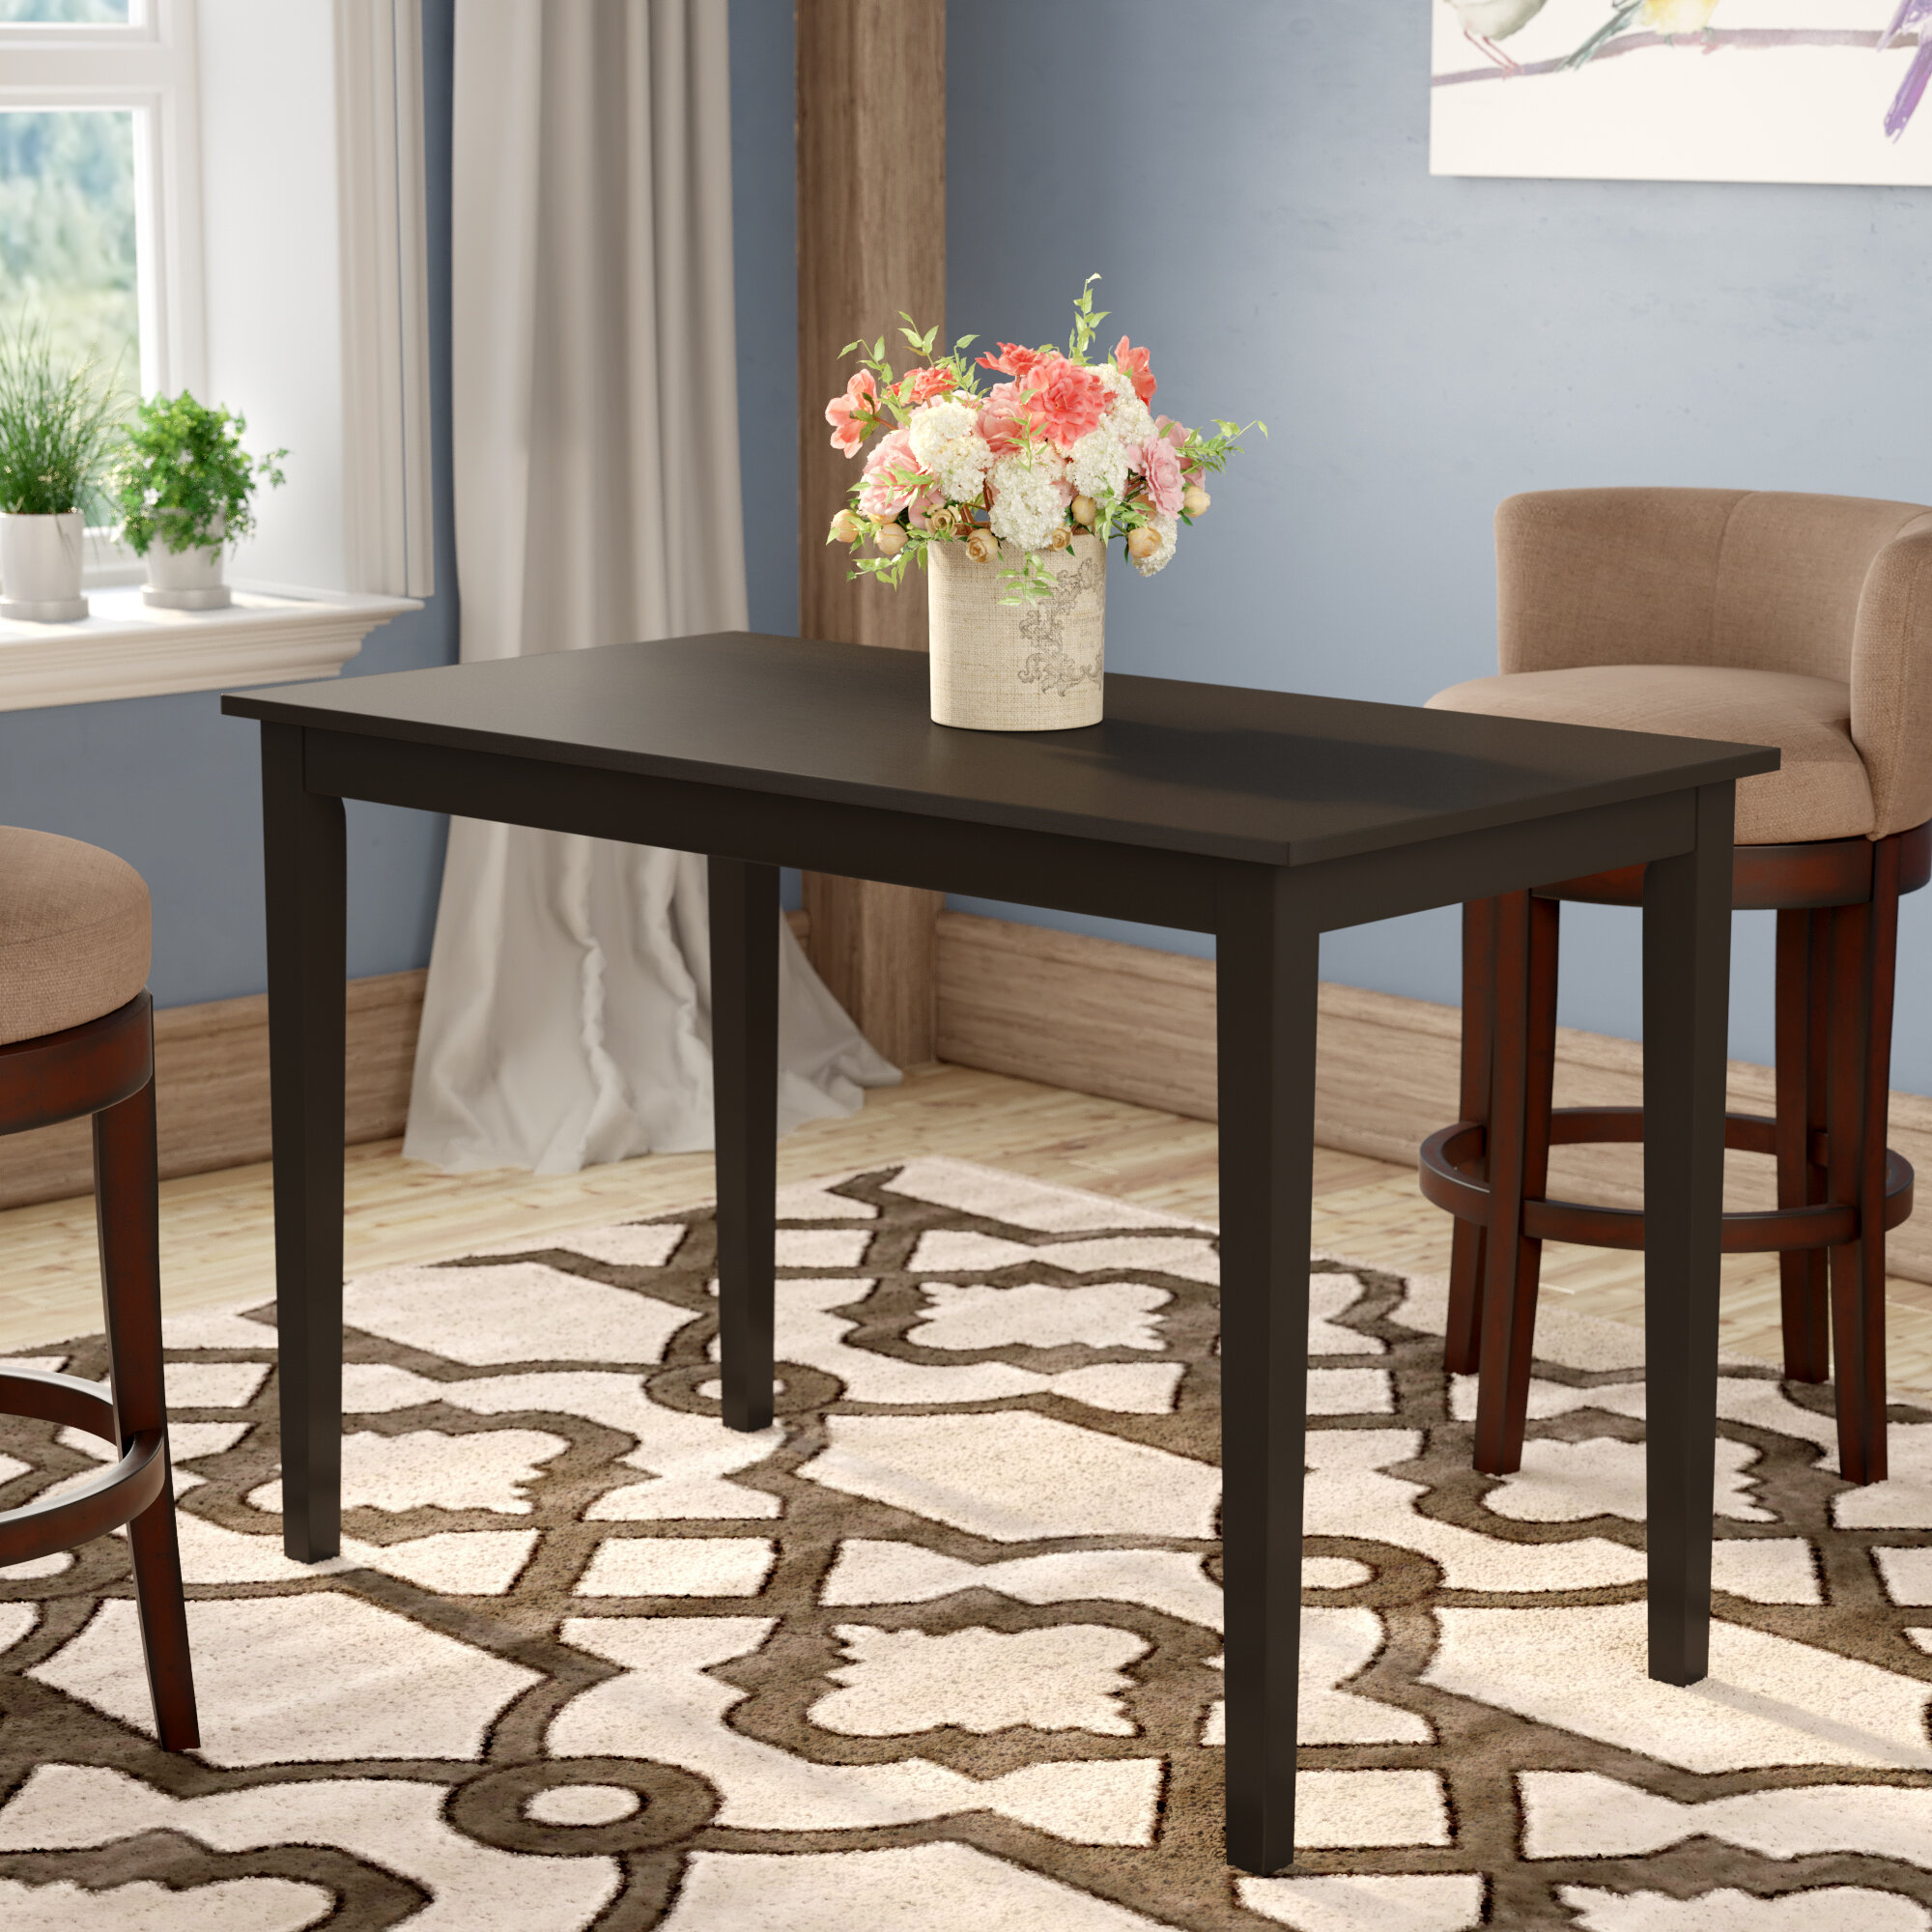 Black & Brown Kitchen & Dining Tables You'll Love in 2021 | Wayfair